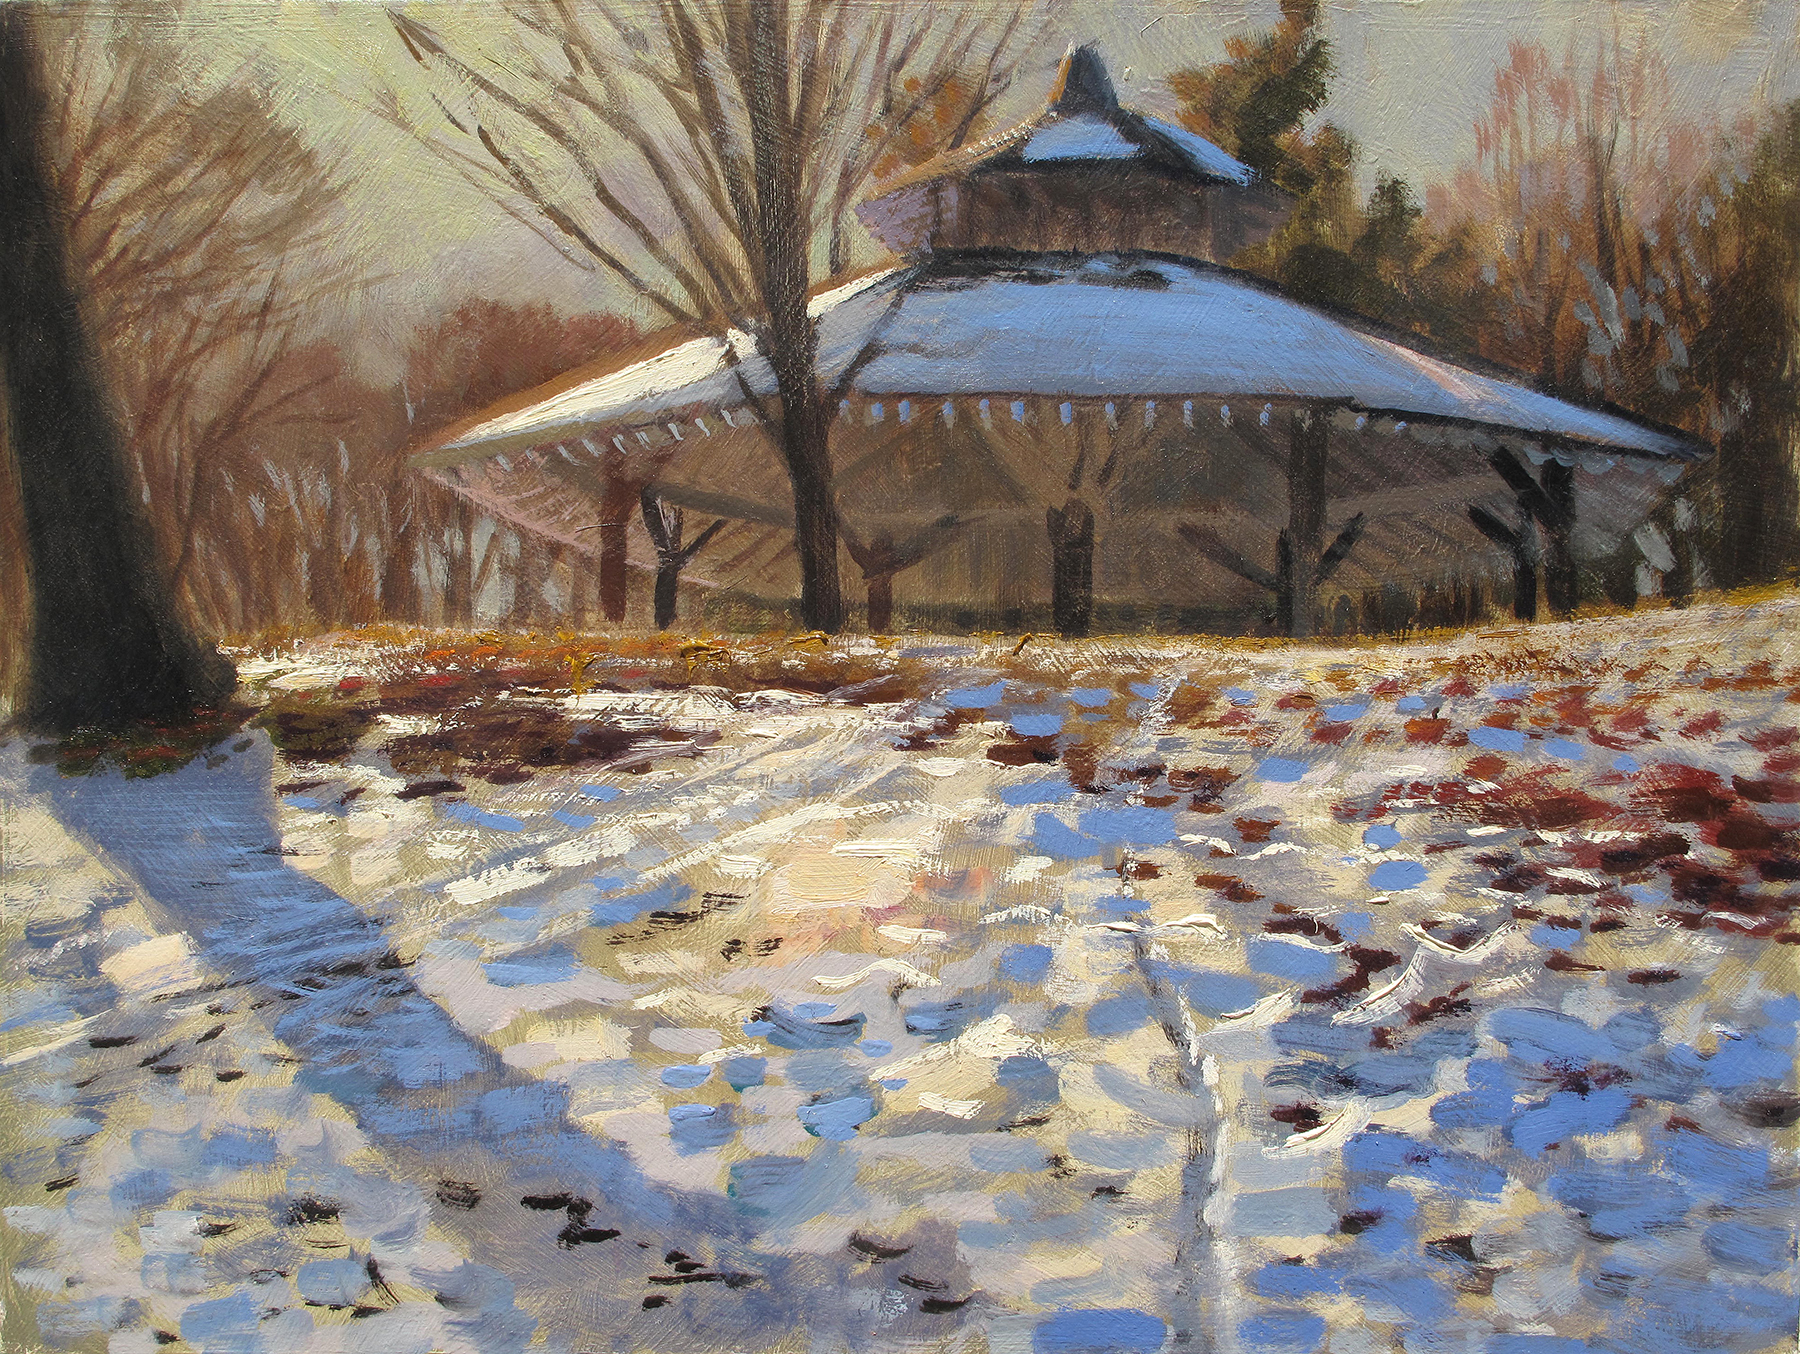 """Beard's Plaisance,  12 x 16, oil on panel Beard was some dude in Minneapolis back in the 1890s who owned this land that the Park Board bought from him way back when. """"Plaisance"""" is a french term for pleasant ground. This open-sided structure hosts a lot of grad parties and picnics. It seems like a good place for a plein air painter to stand when it's raining but there isn't much to look at,"""